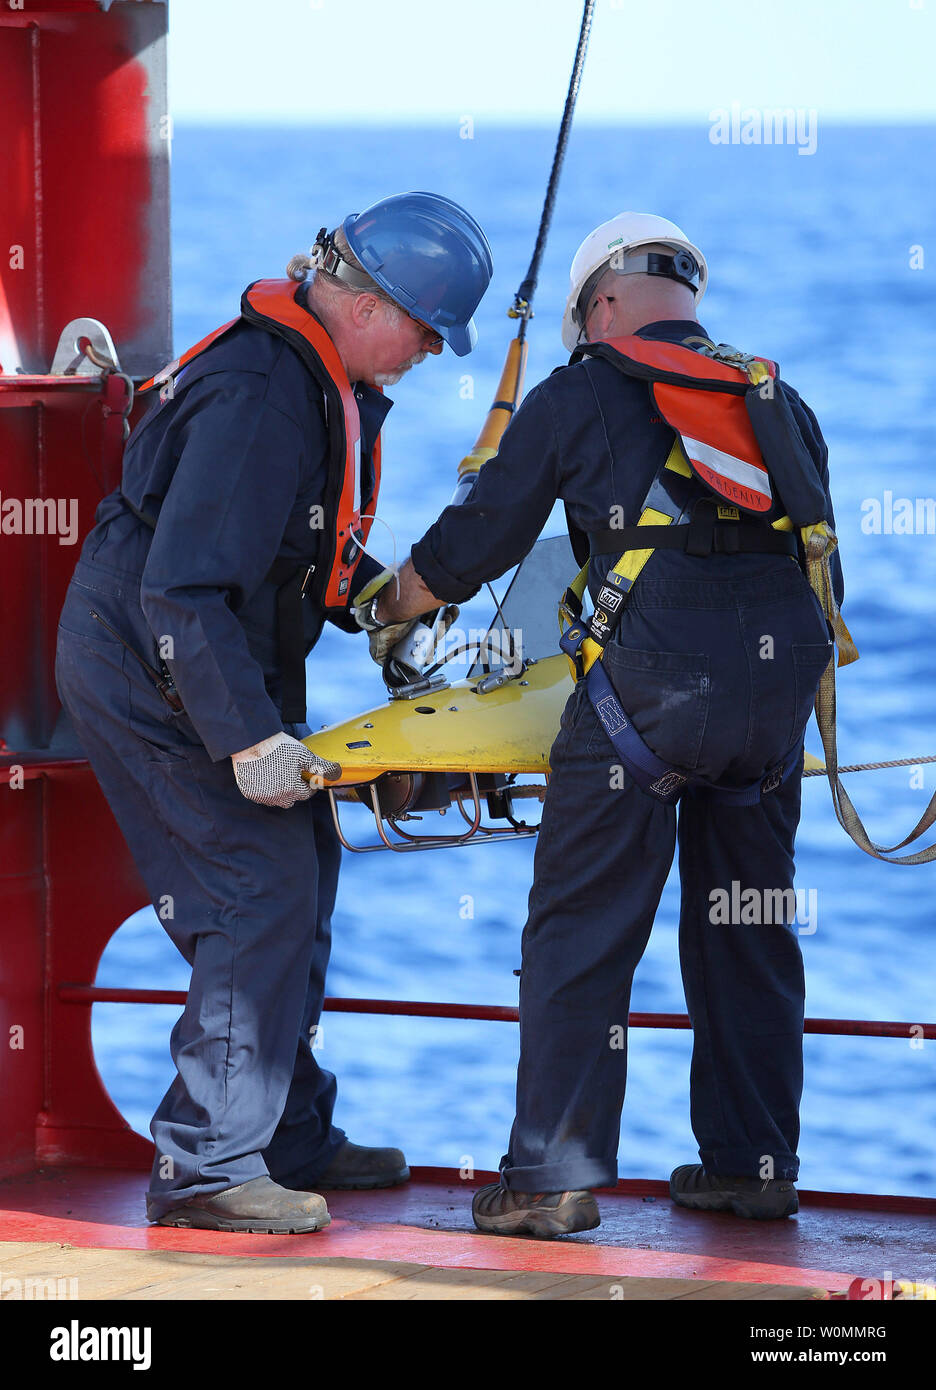 Phoenix International personnel deploy a 'towed pinger locator' off the deck of Australian Defense Vessel Ocean Shield in the search for the flight data recorder and cockpit voice recorder of a Malaysia Airlines jetliner missing in the Indian Ocean, about 1,000 miles off the coast of Perth, Australia.  The U.S. Navy 'towed pinger locator' connected to the Ocean Shield picked up signals consistent with that of the missing jetliner it was announced today April 7, 2014.   UPI/Kelly Hunt/Australian Defense Force - Stock Image